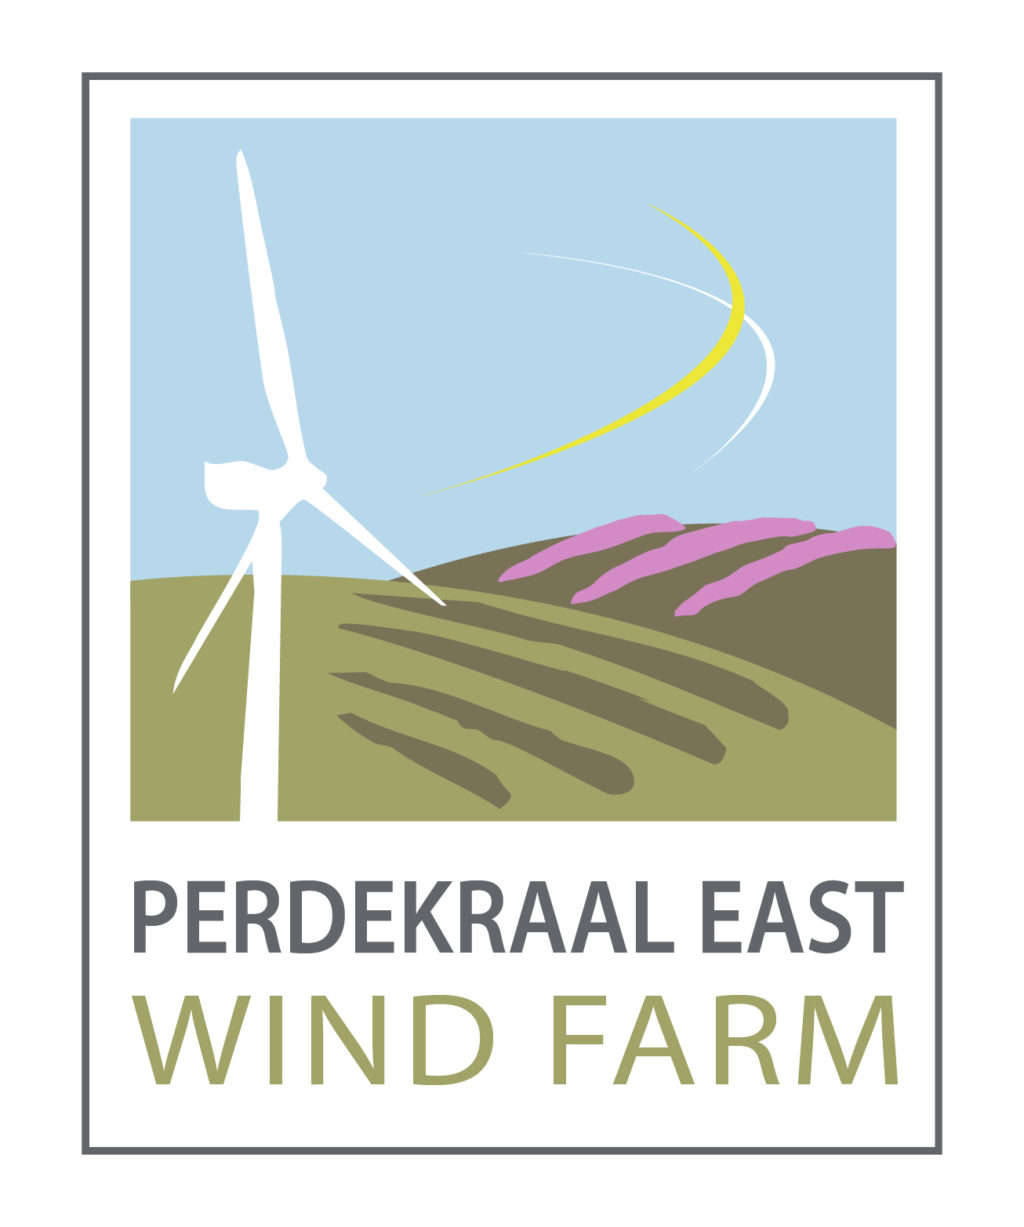 Perdekraal East Wind Farm Logo.jpg